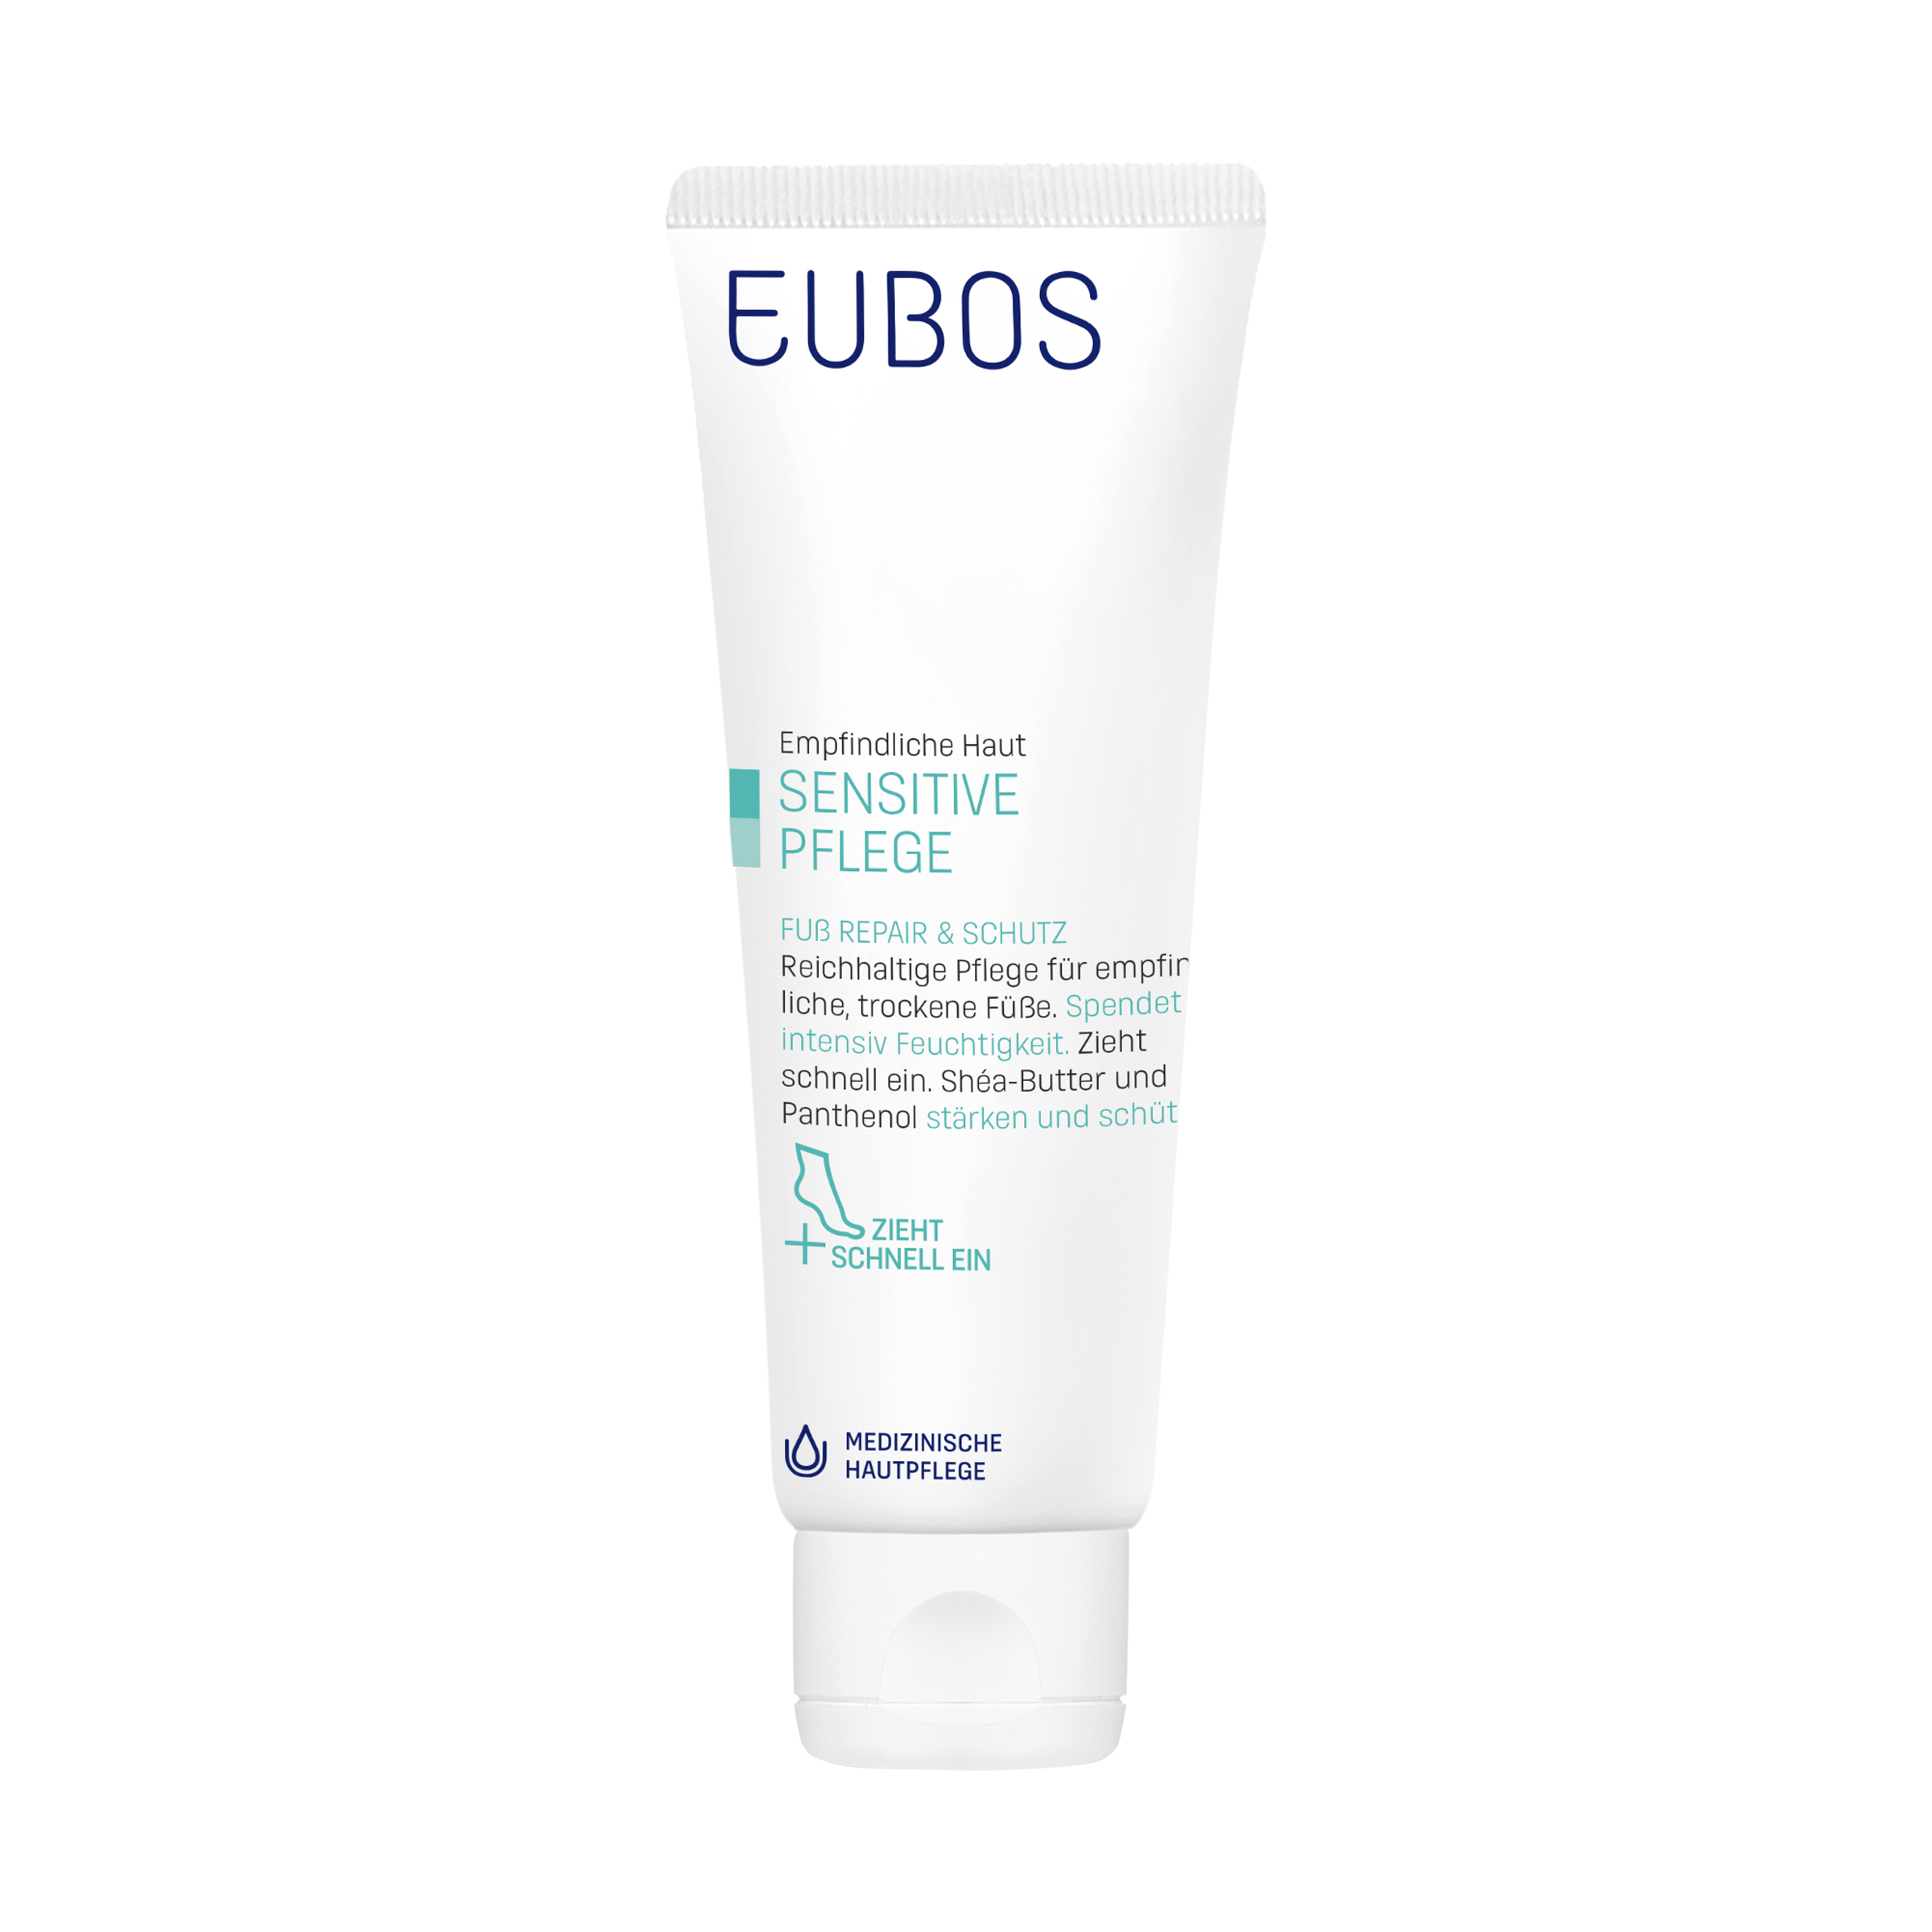 EUBOS Sensitive Fuß Repair & Schutz